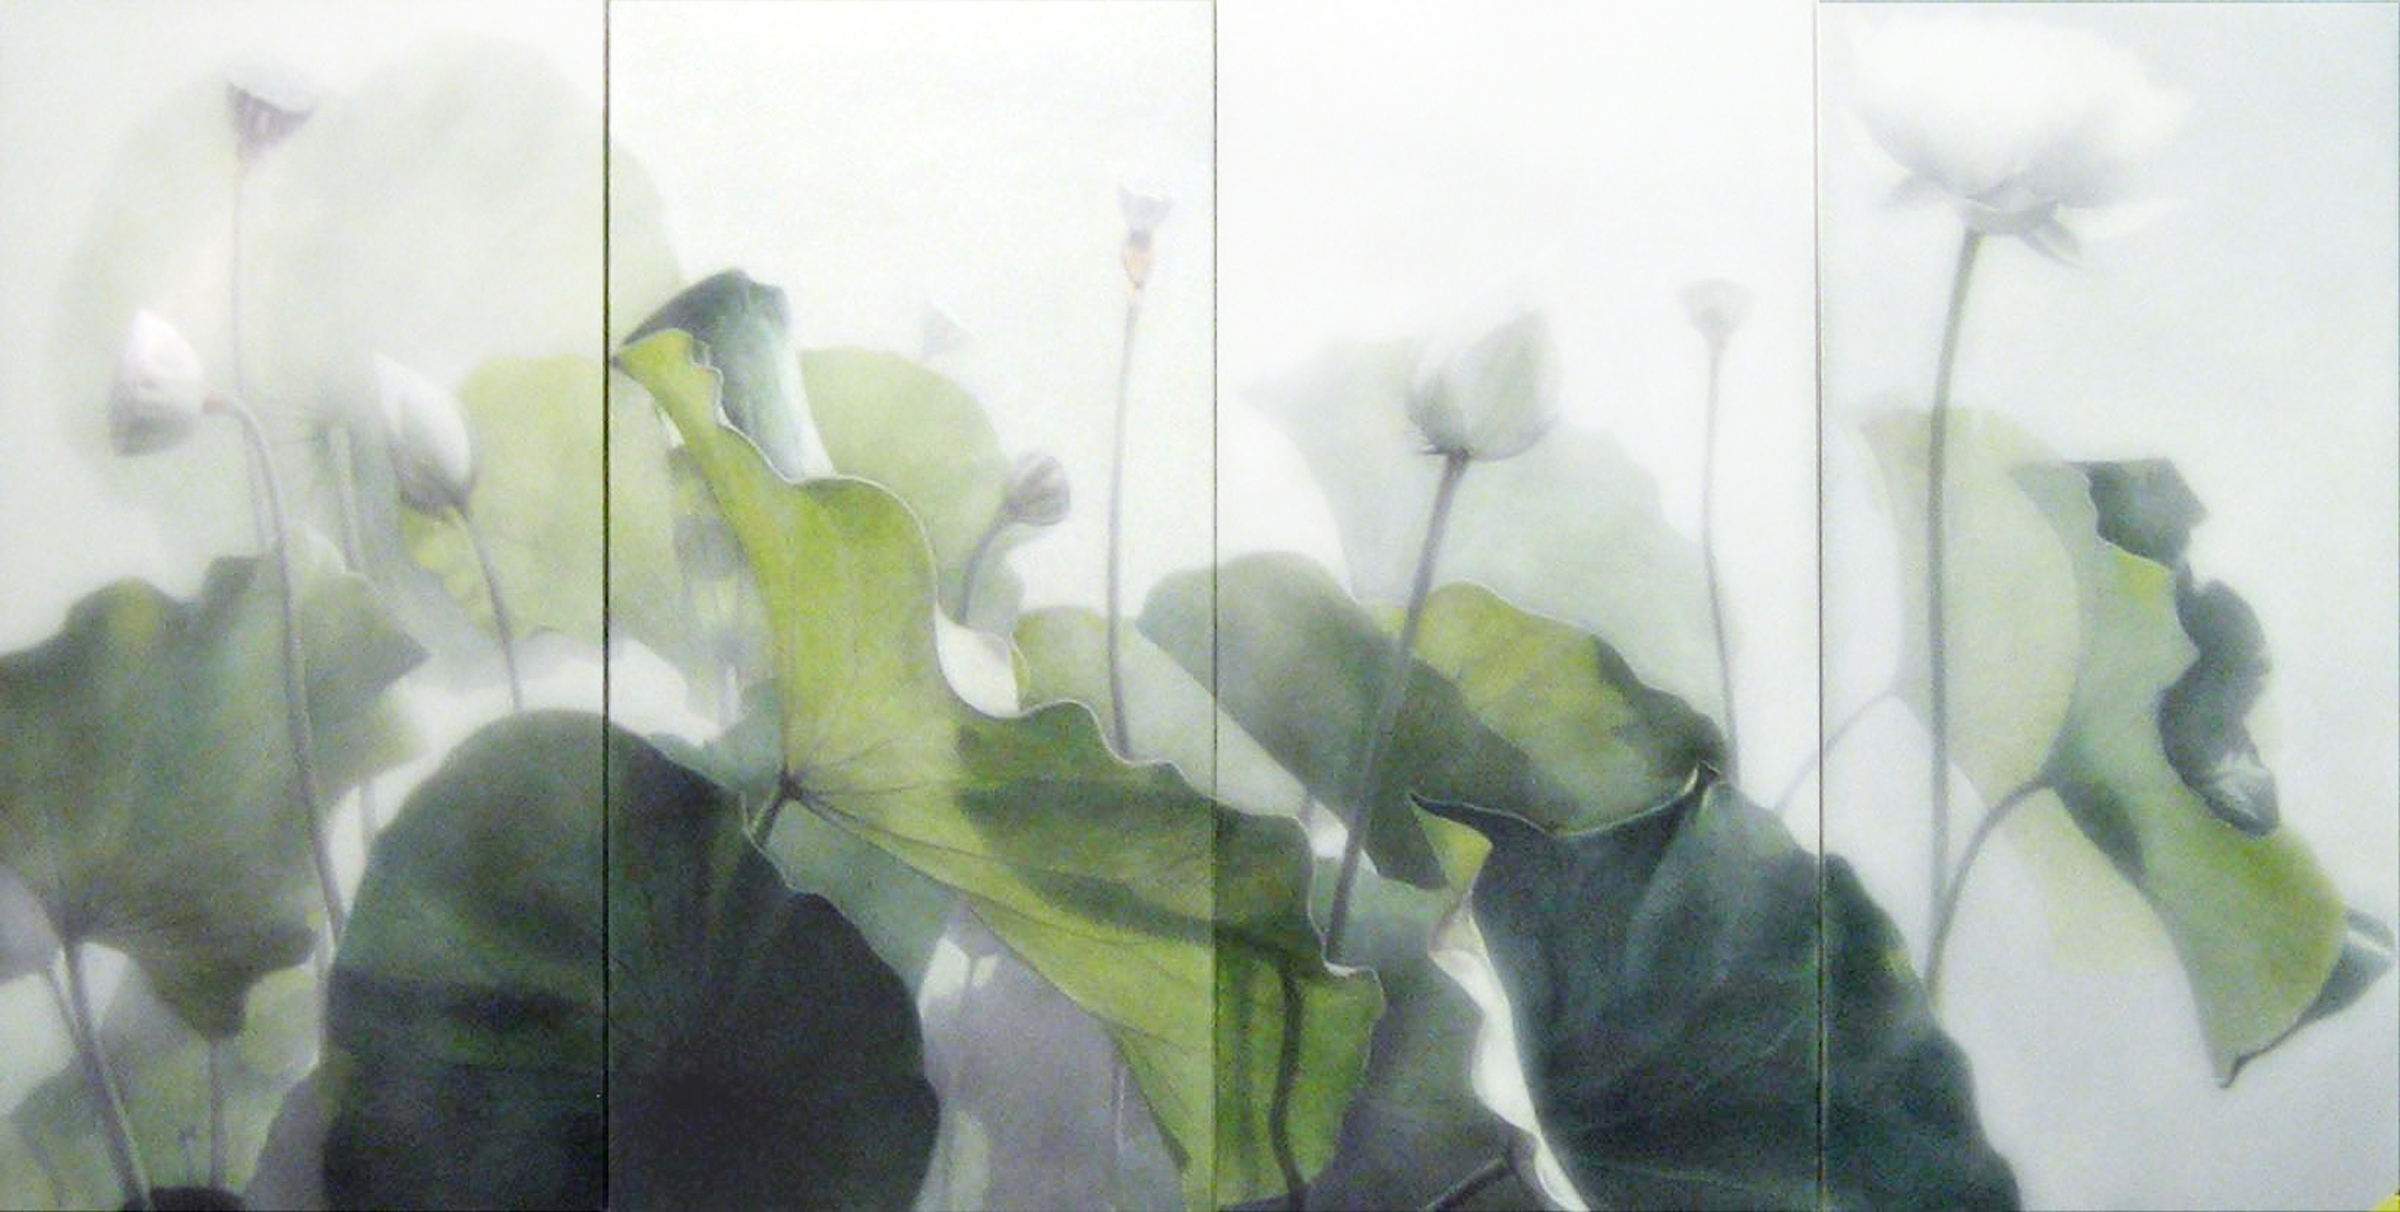 Lotus  , 2010  Vine charcoal, acrylic glazes on paper on panel  4 panels. 24 x 48 inches